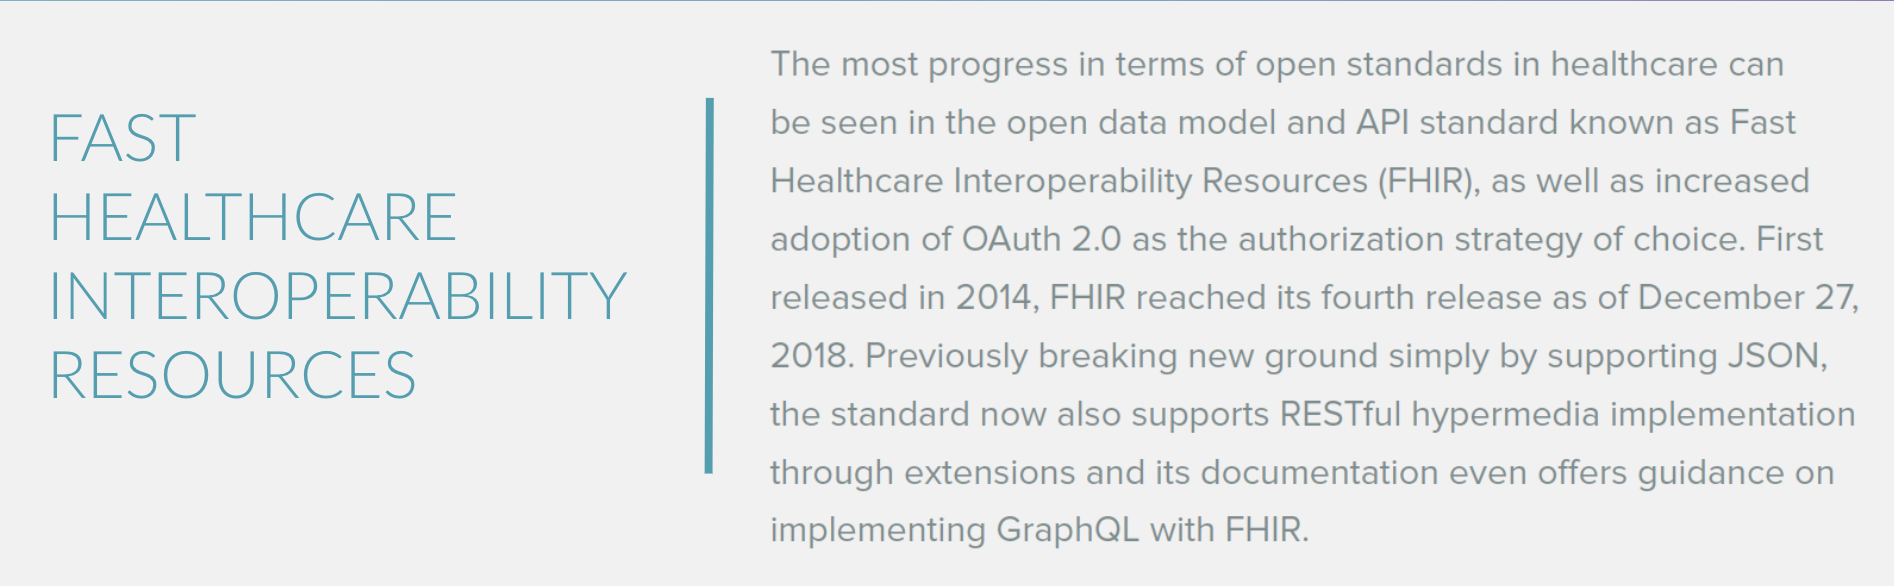 Fast Healthcare Interoperability Resources